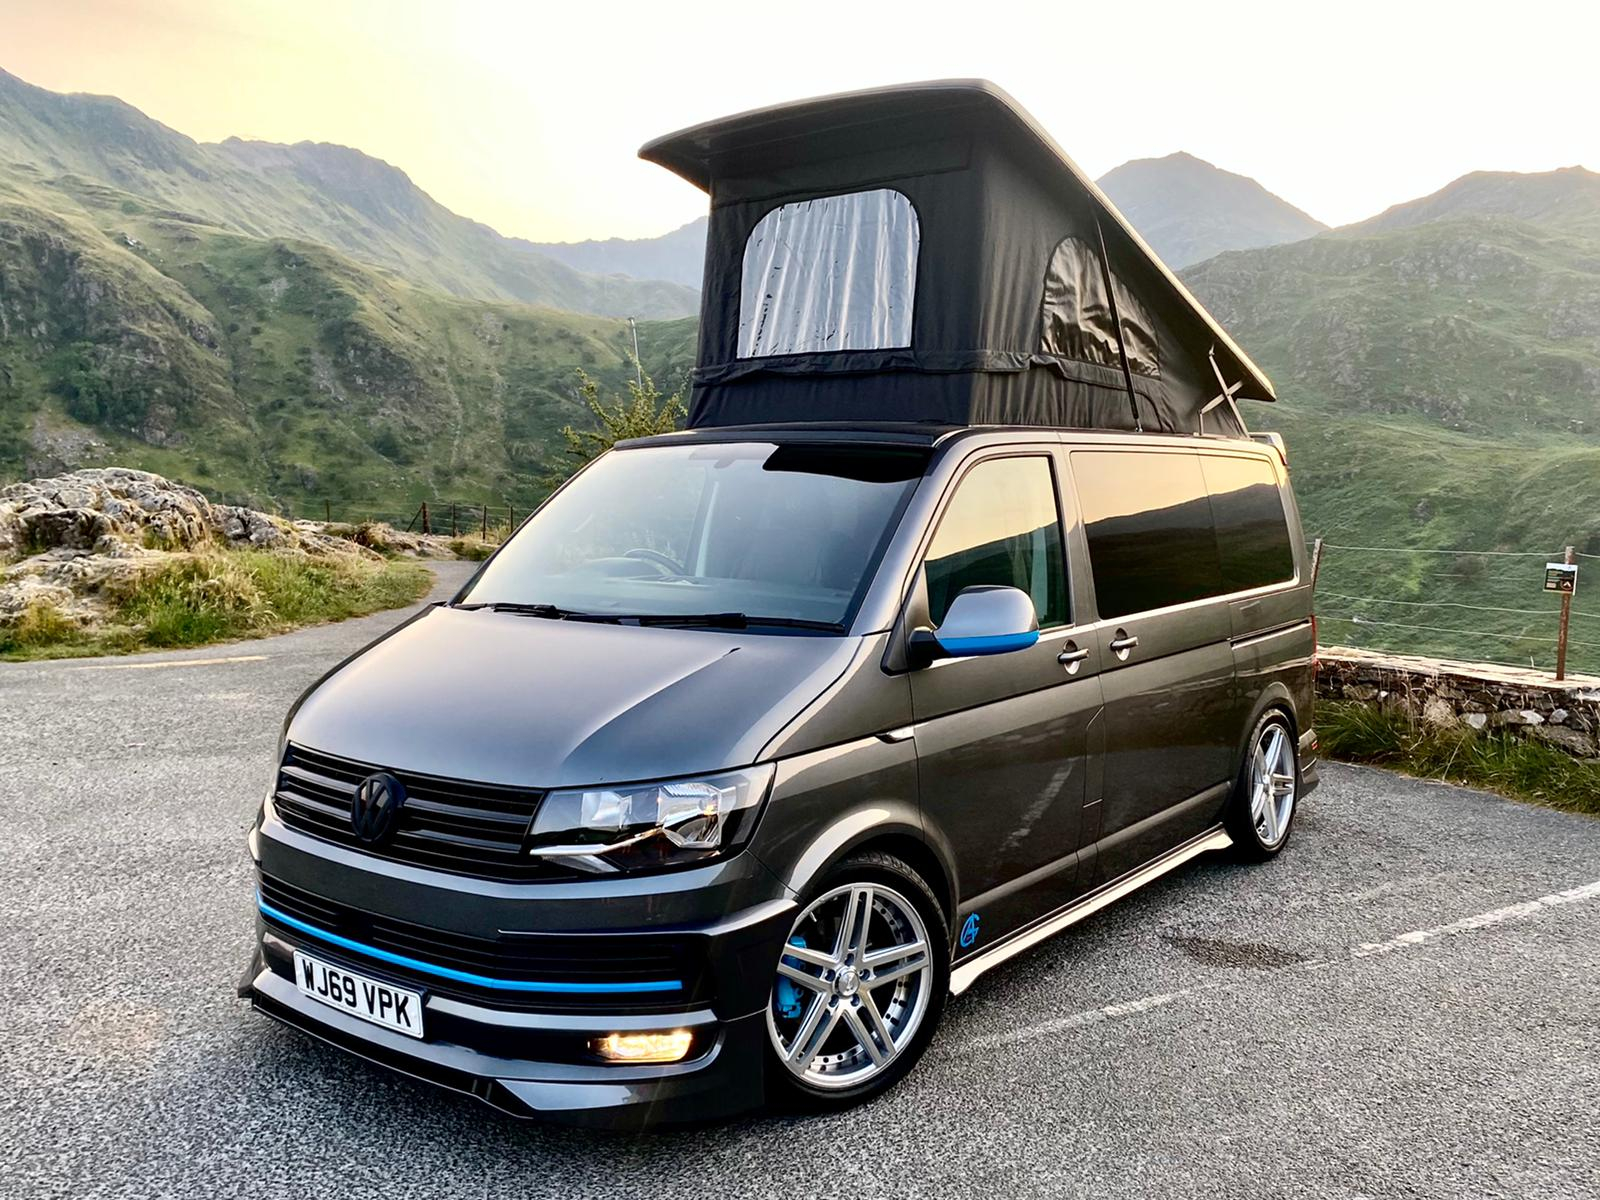 2019 VW T6 Highline Sport Off Grid with ABT bodykit - 2nd Aug